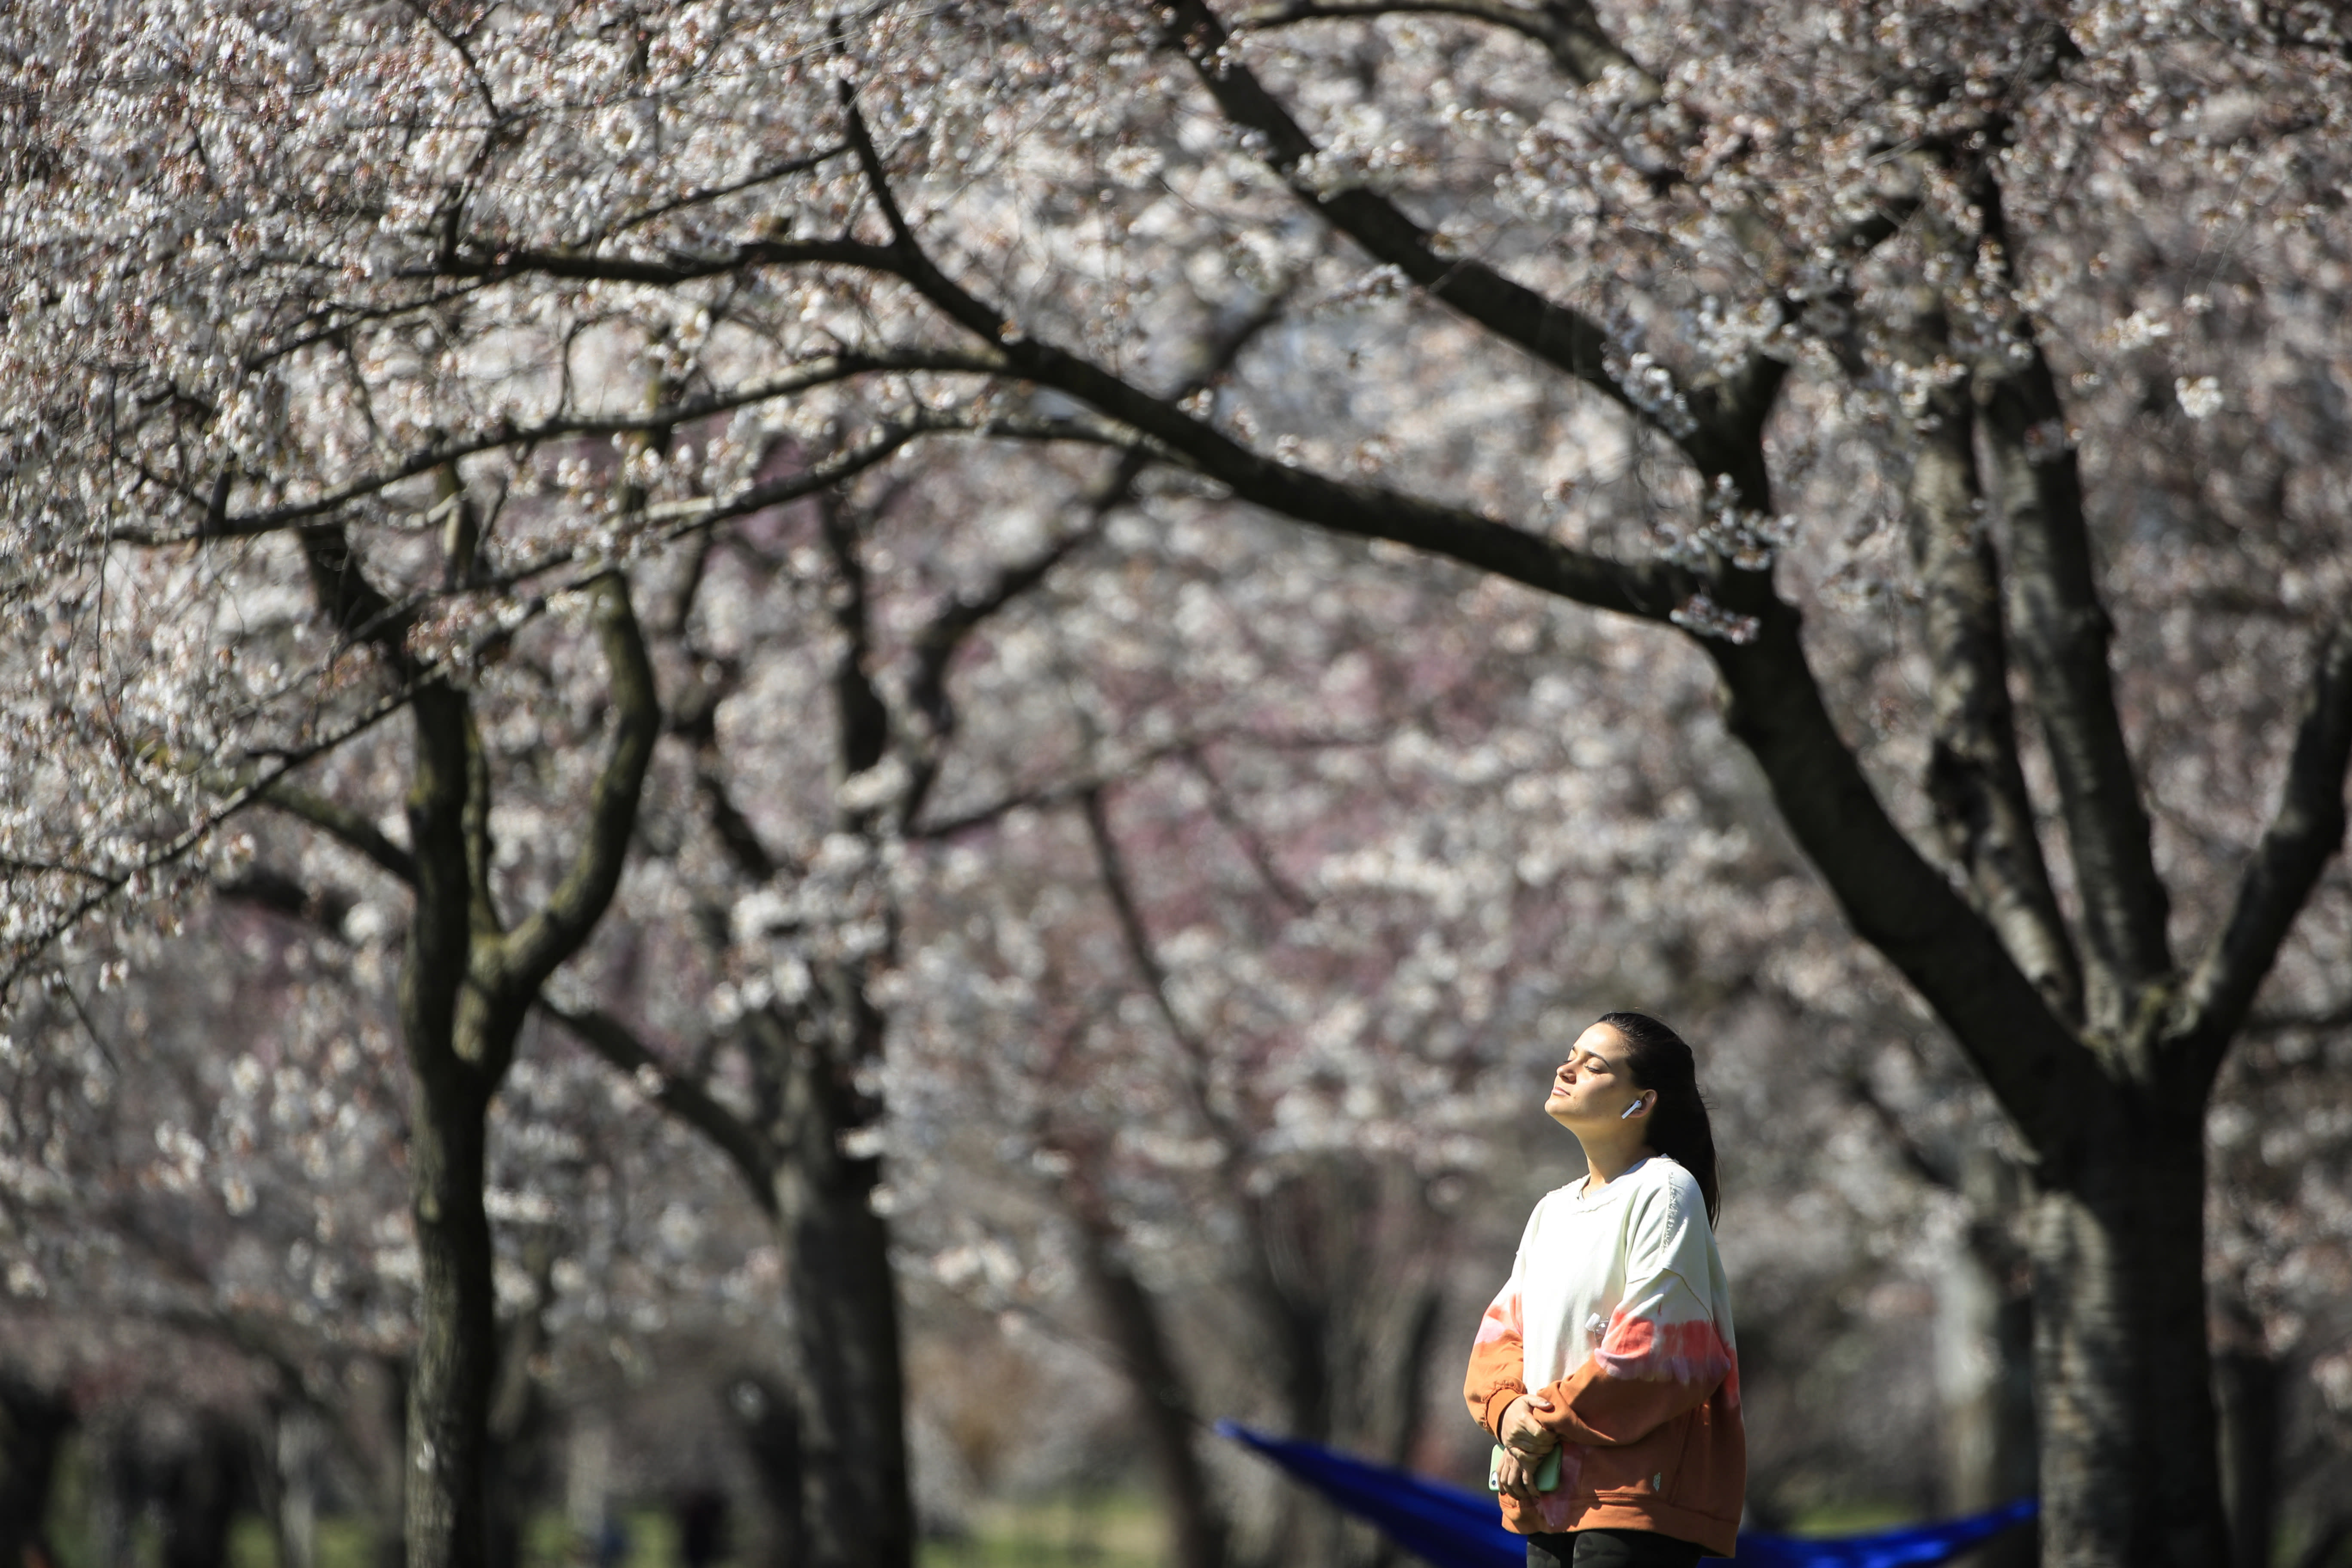 In this March 26, 2020, photo, a person takes in the afternoon sun amongst the cherry blossoms along Kelly Drive in Philadelphia. For millions of seasonal allergy sufferers, the annual onset of watery eyes and scratchy throats is bumping up against the global spread of a new virus that produces its own constellation of respiratory symptoms. That's causing angst for people who suffer from hay fever and are now asking themselves whether their symptoms are related to their allergies or the new coronavirus. (AP Photo/Matt Rourke)